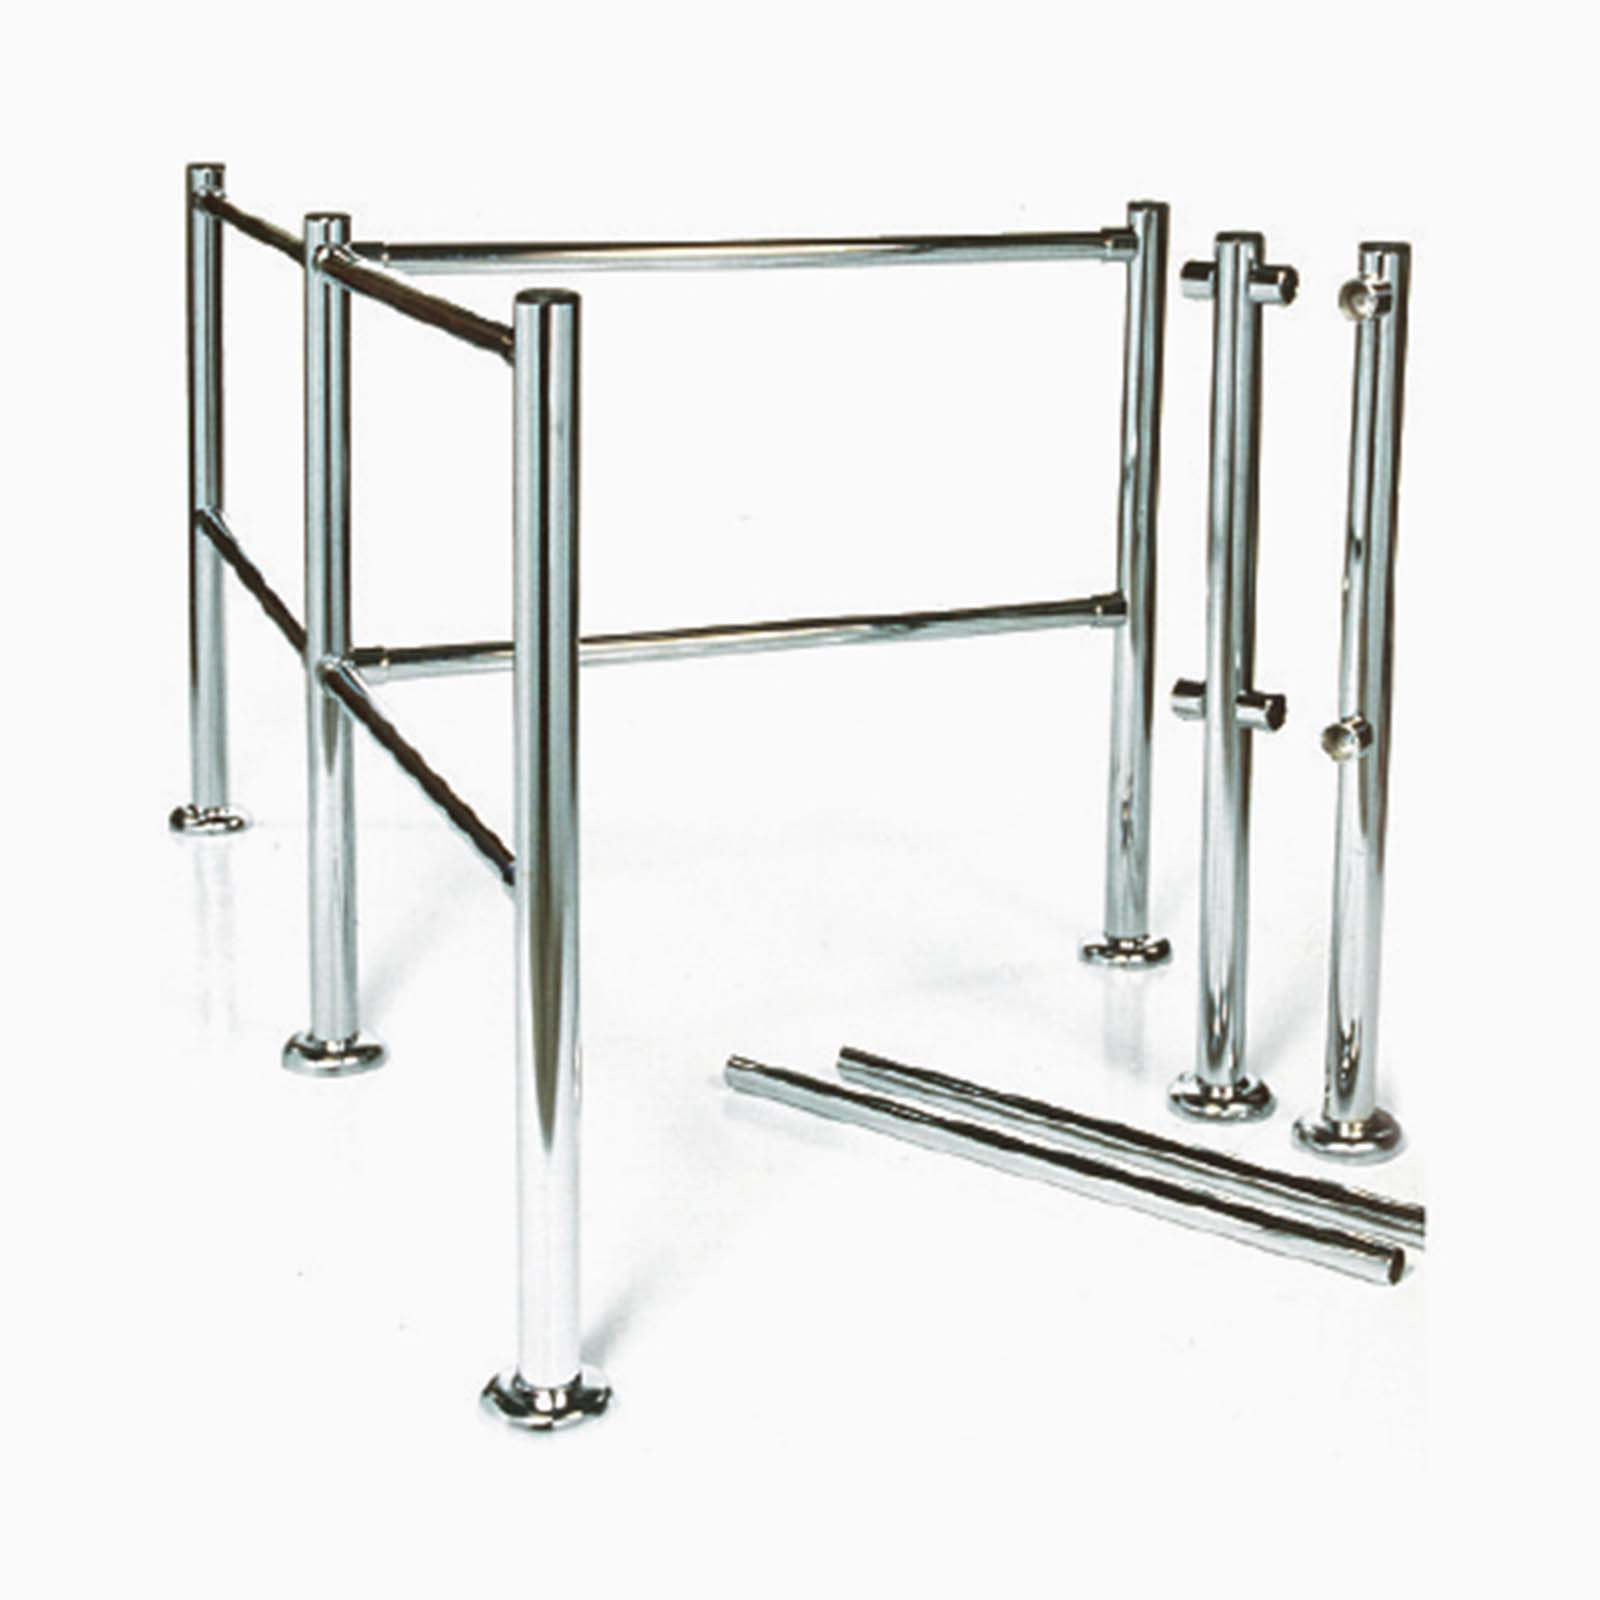 McCue Guidance Rail in Store with Shopping carts